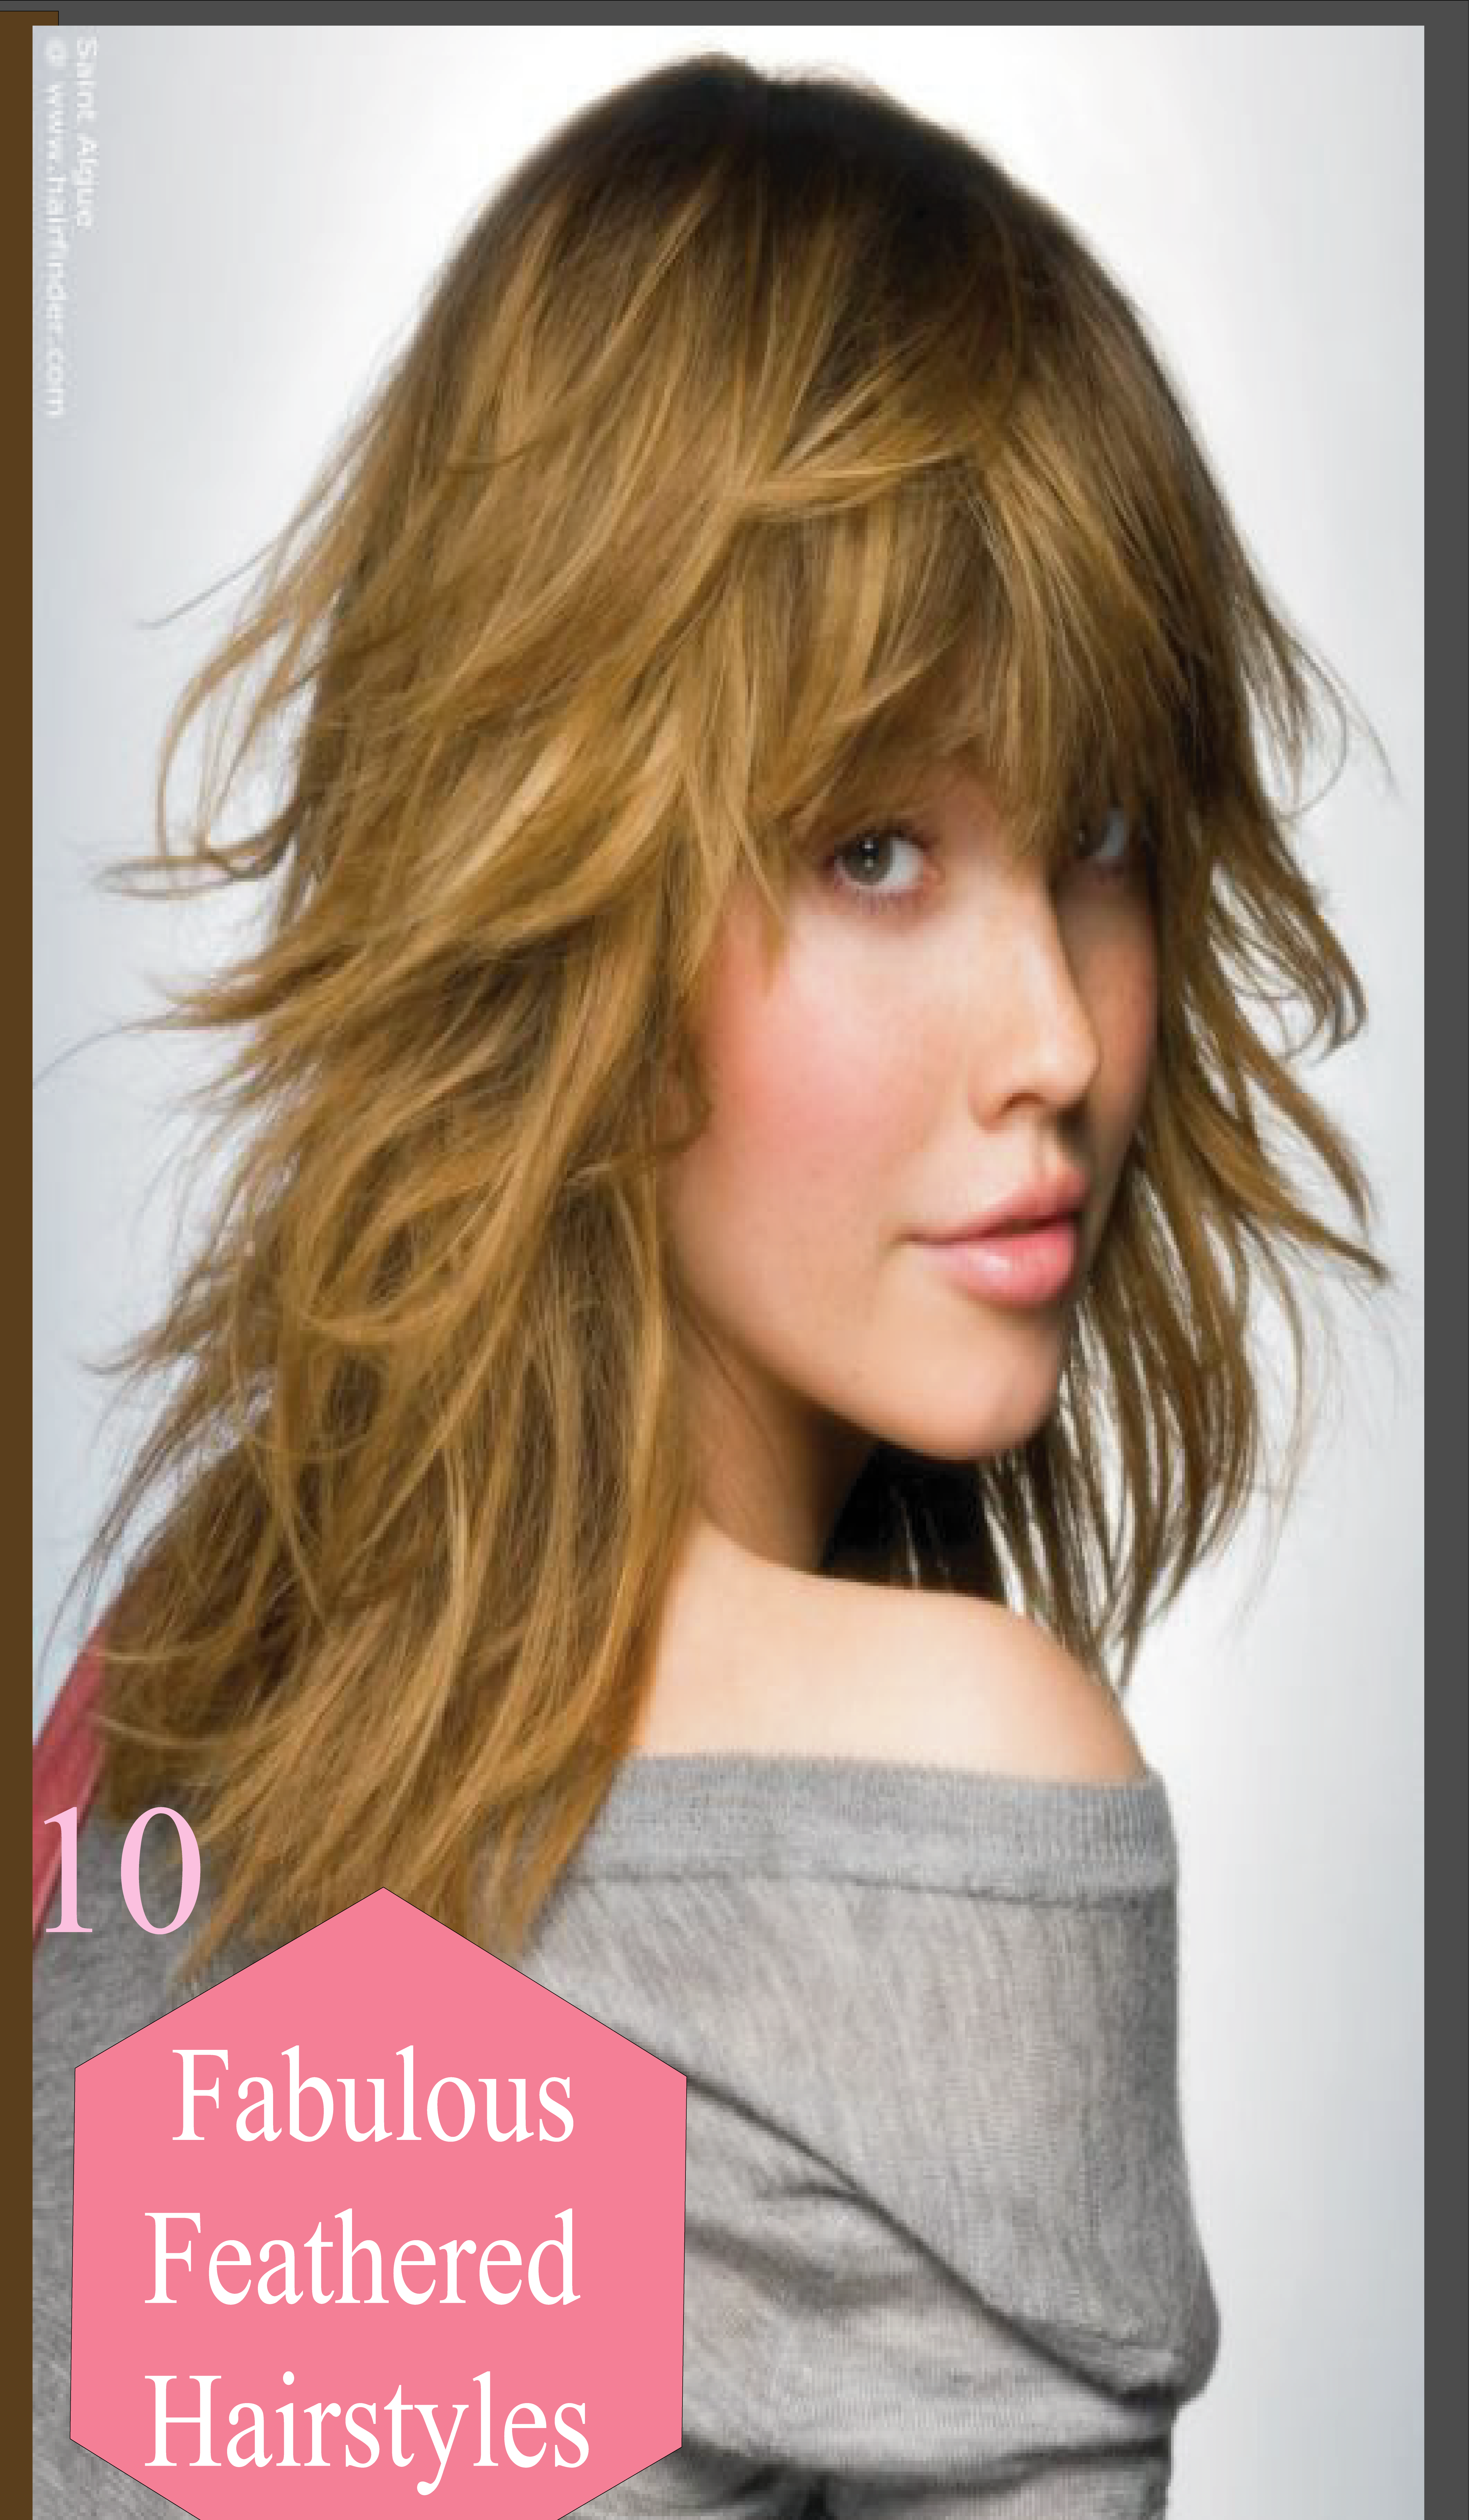 10 fabulous feathered hairstyles for long straight hair